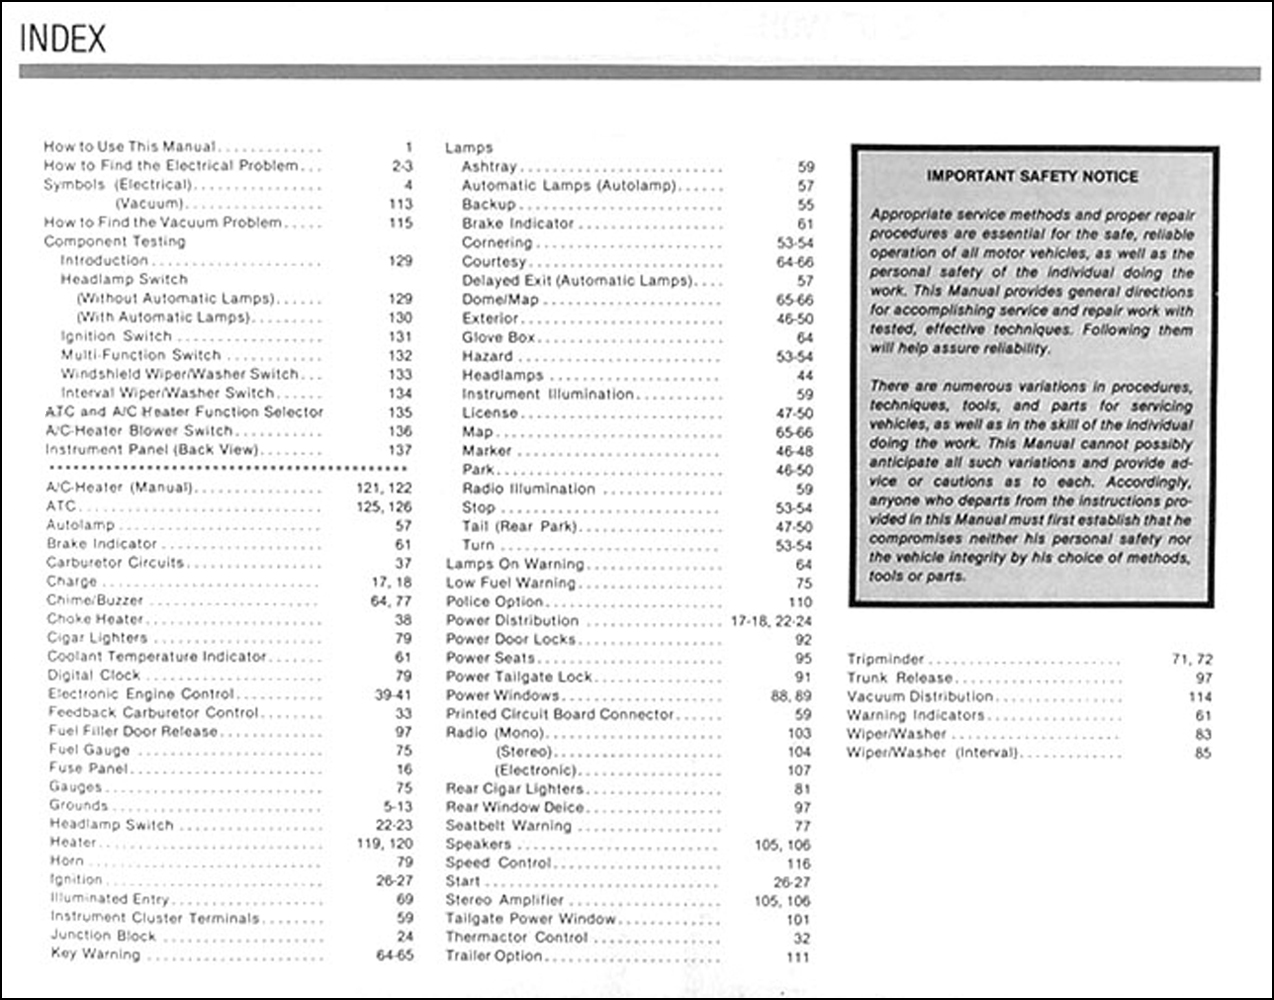 1983 crown victoria grand marquis electrical troubleshooting manual